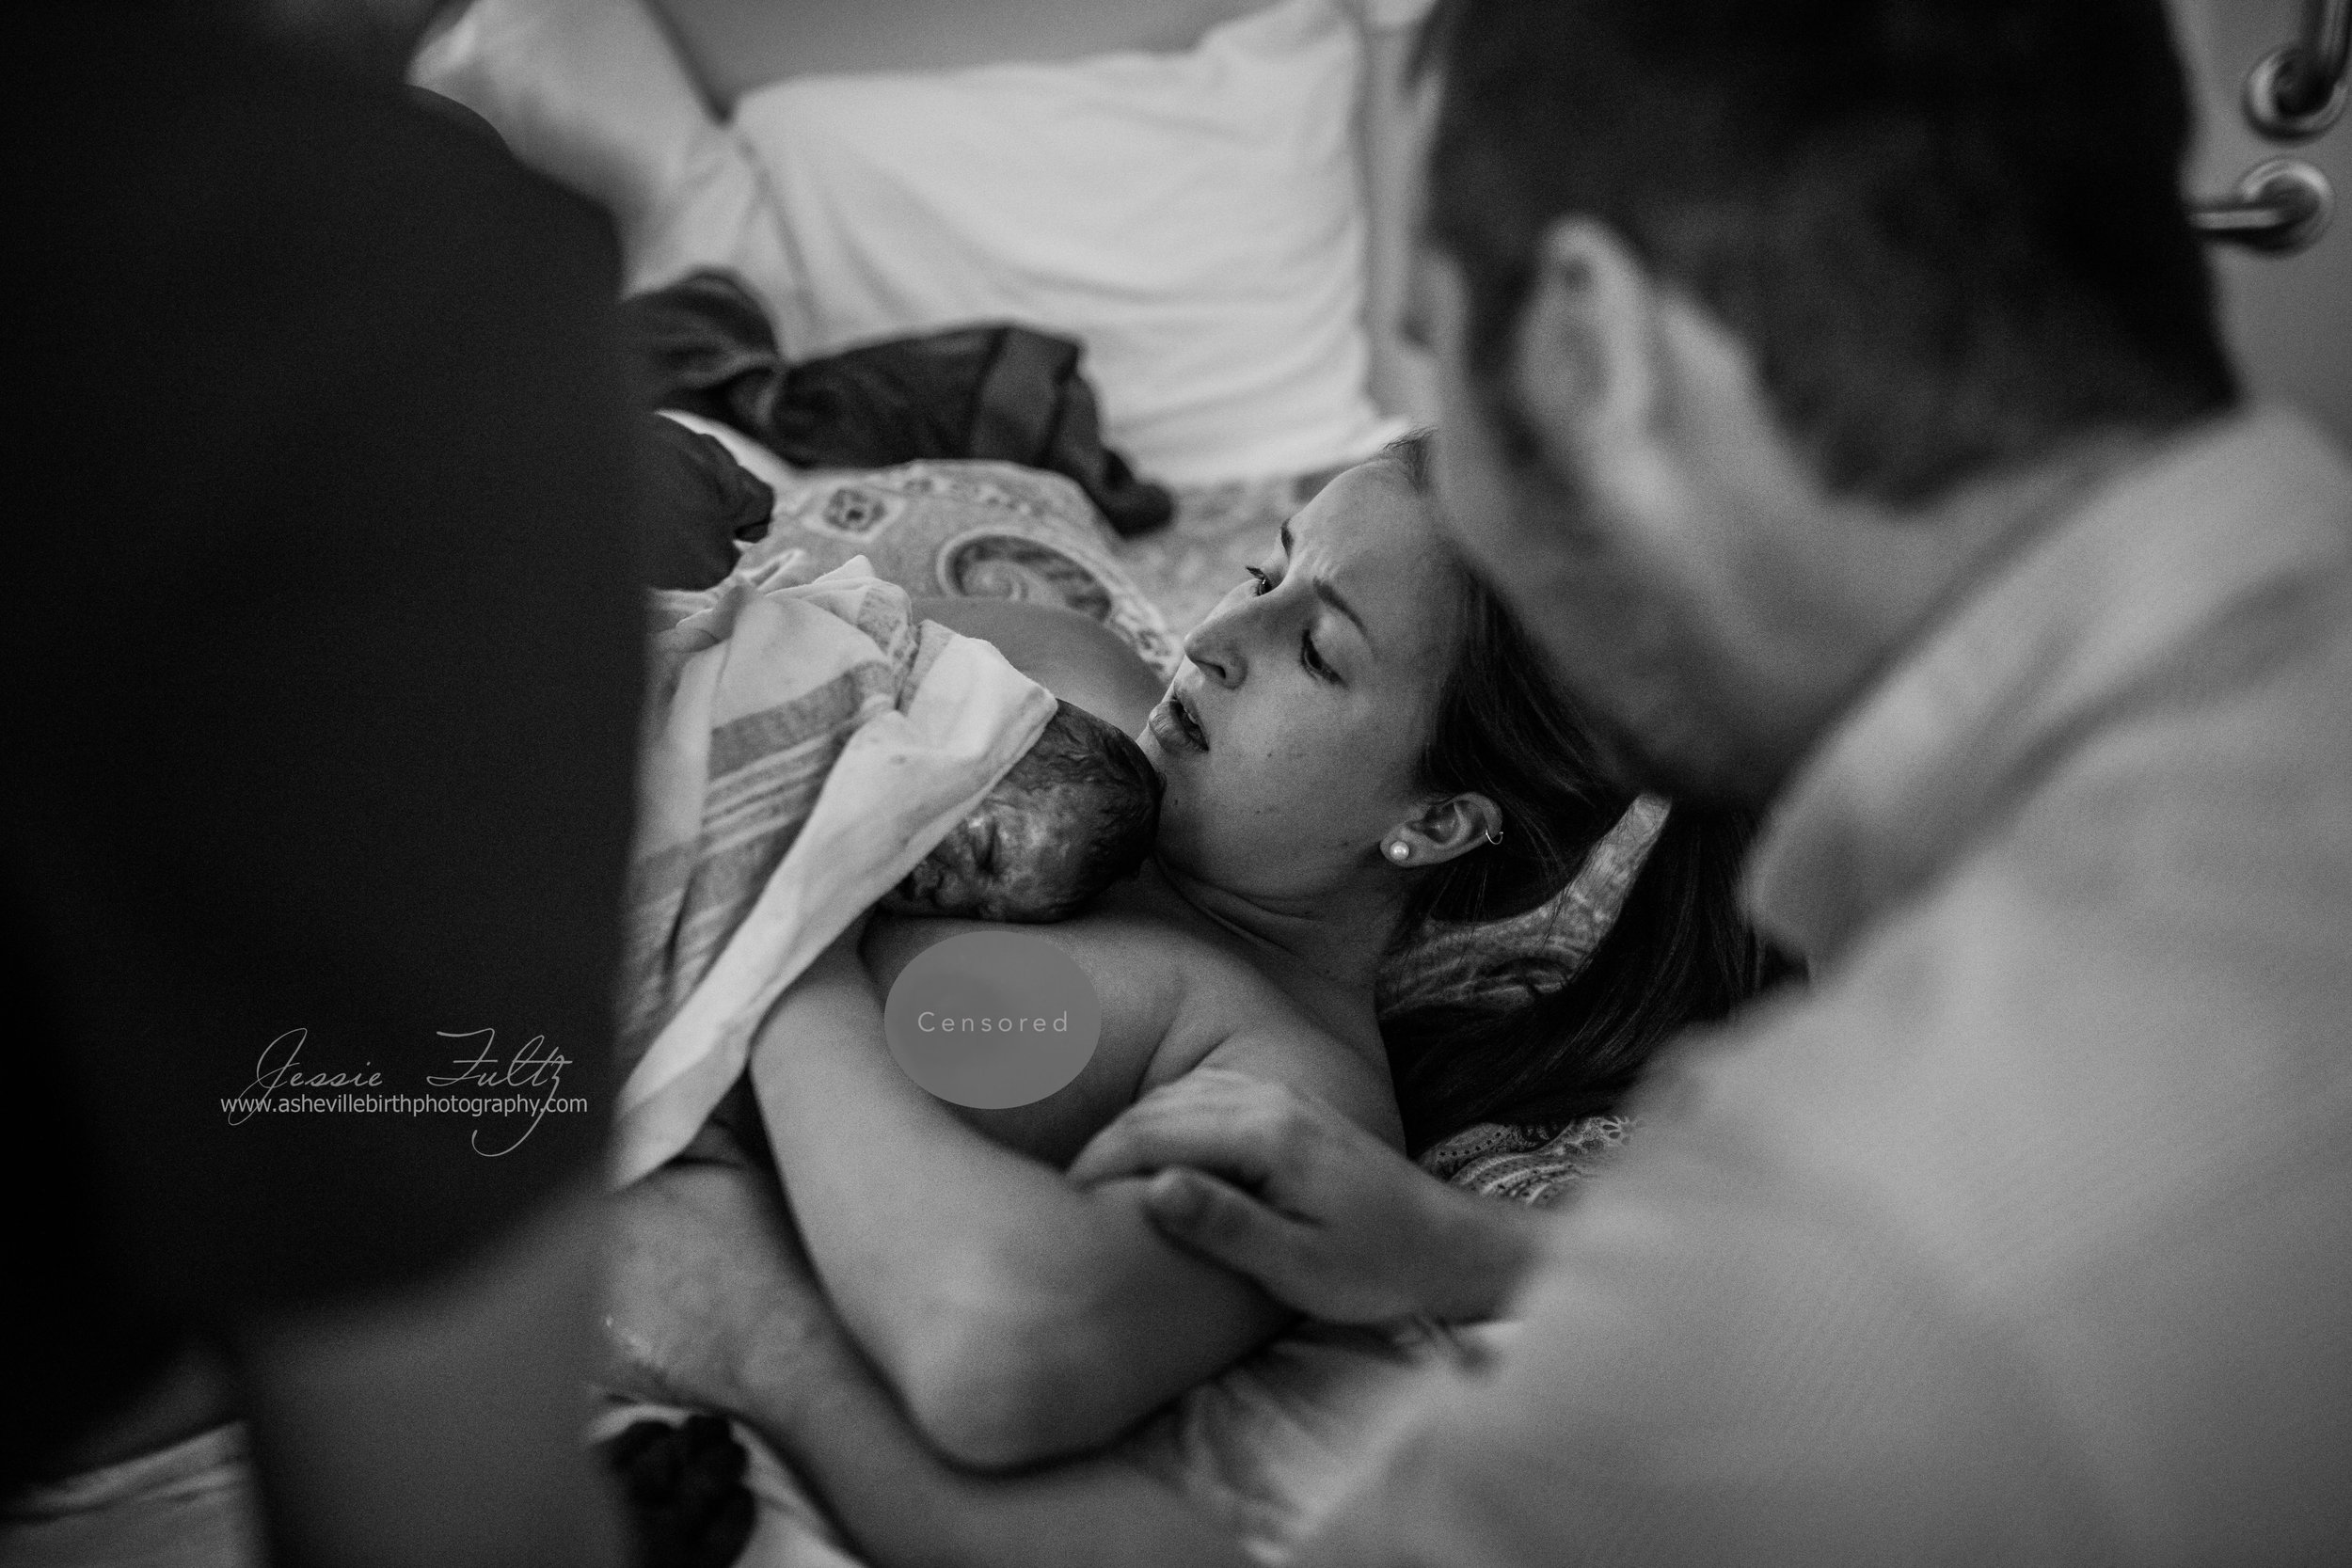 a shocked and emotional new mom looks at her baby whom was just delivered